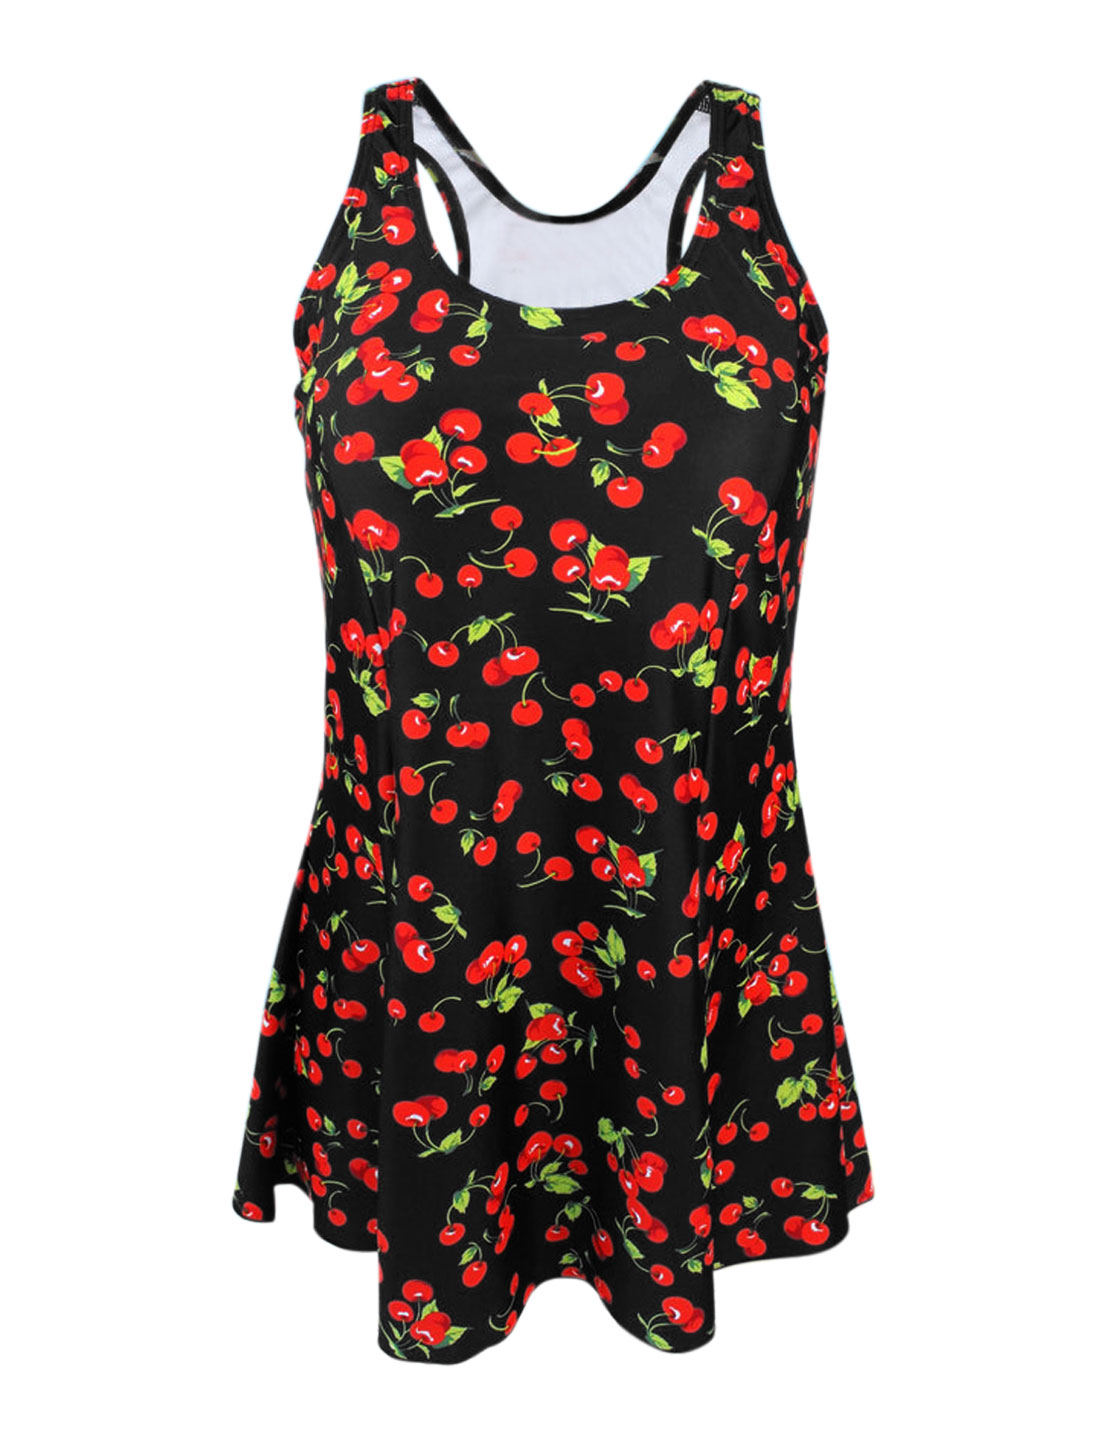 Women Vintage One Piece Cherry Slim Bathing Suit Swimsuit Swimdress US 8 Cover Up